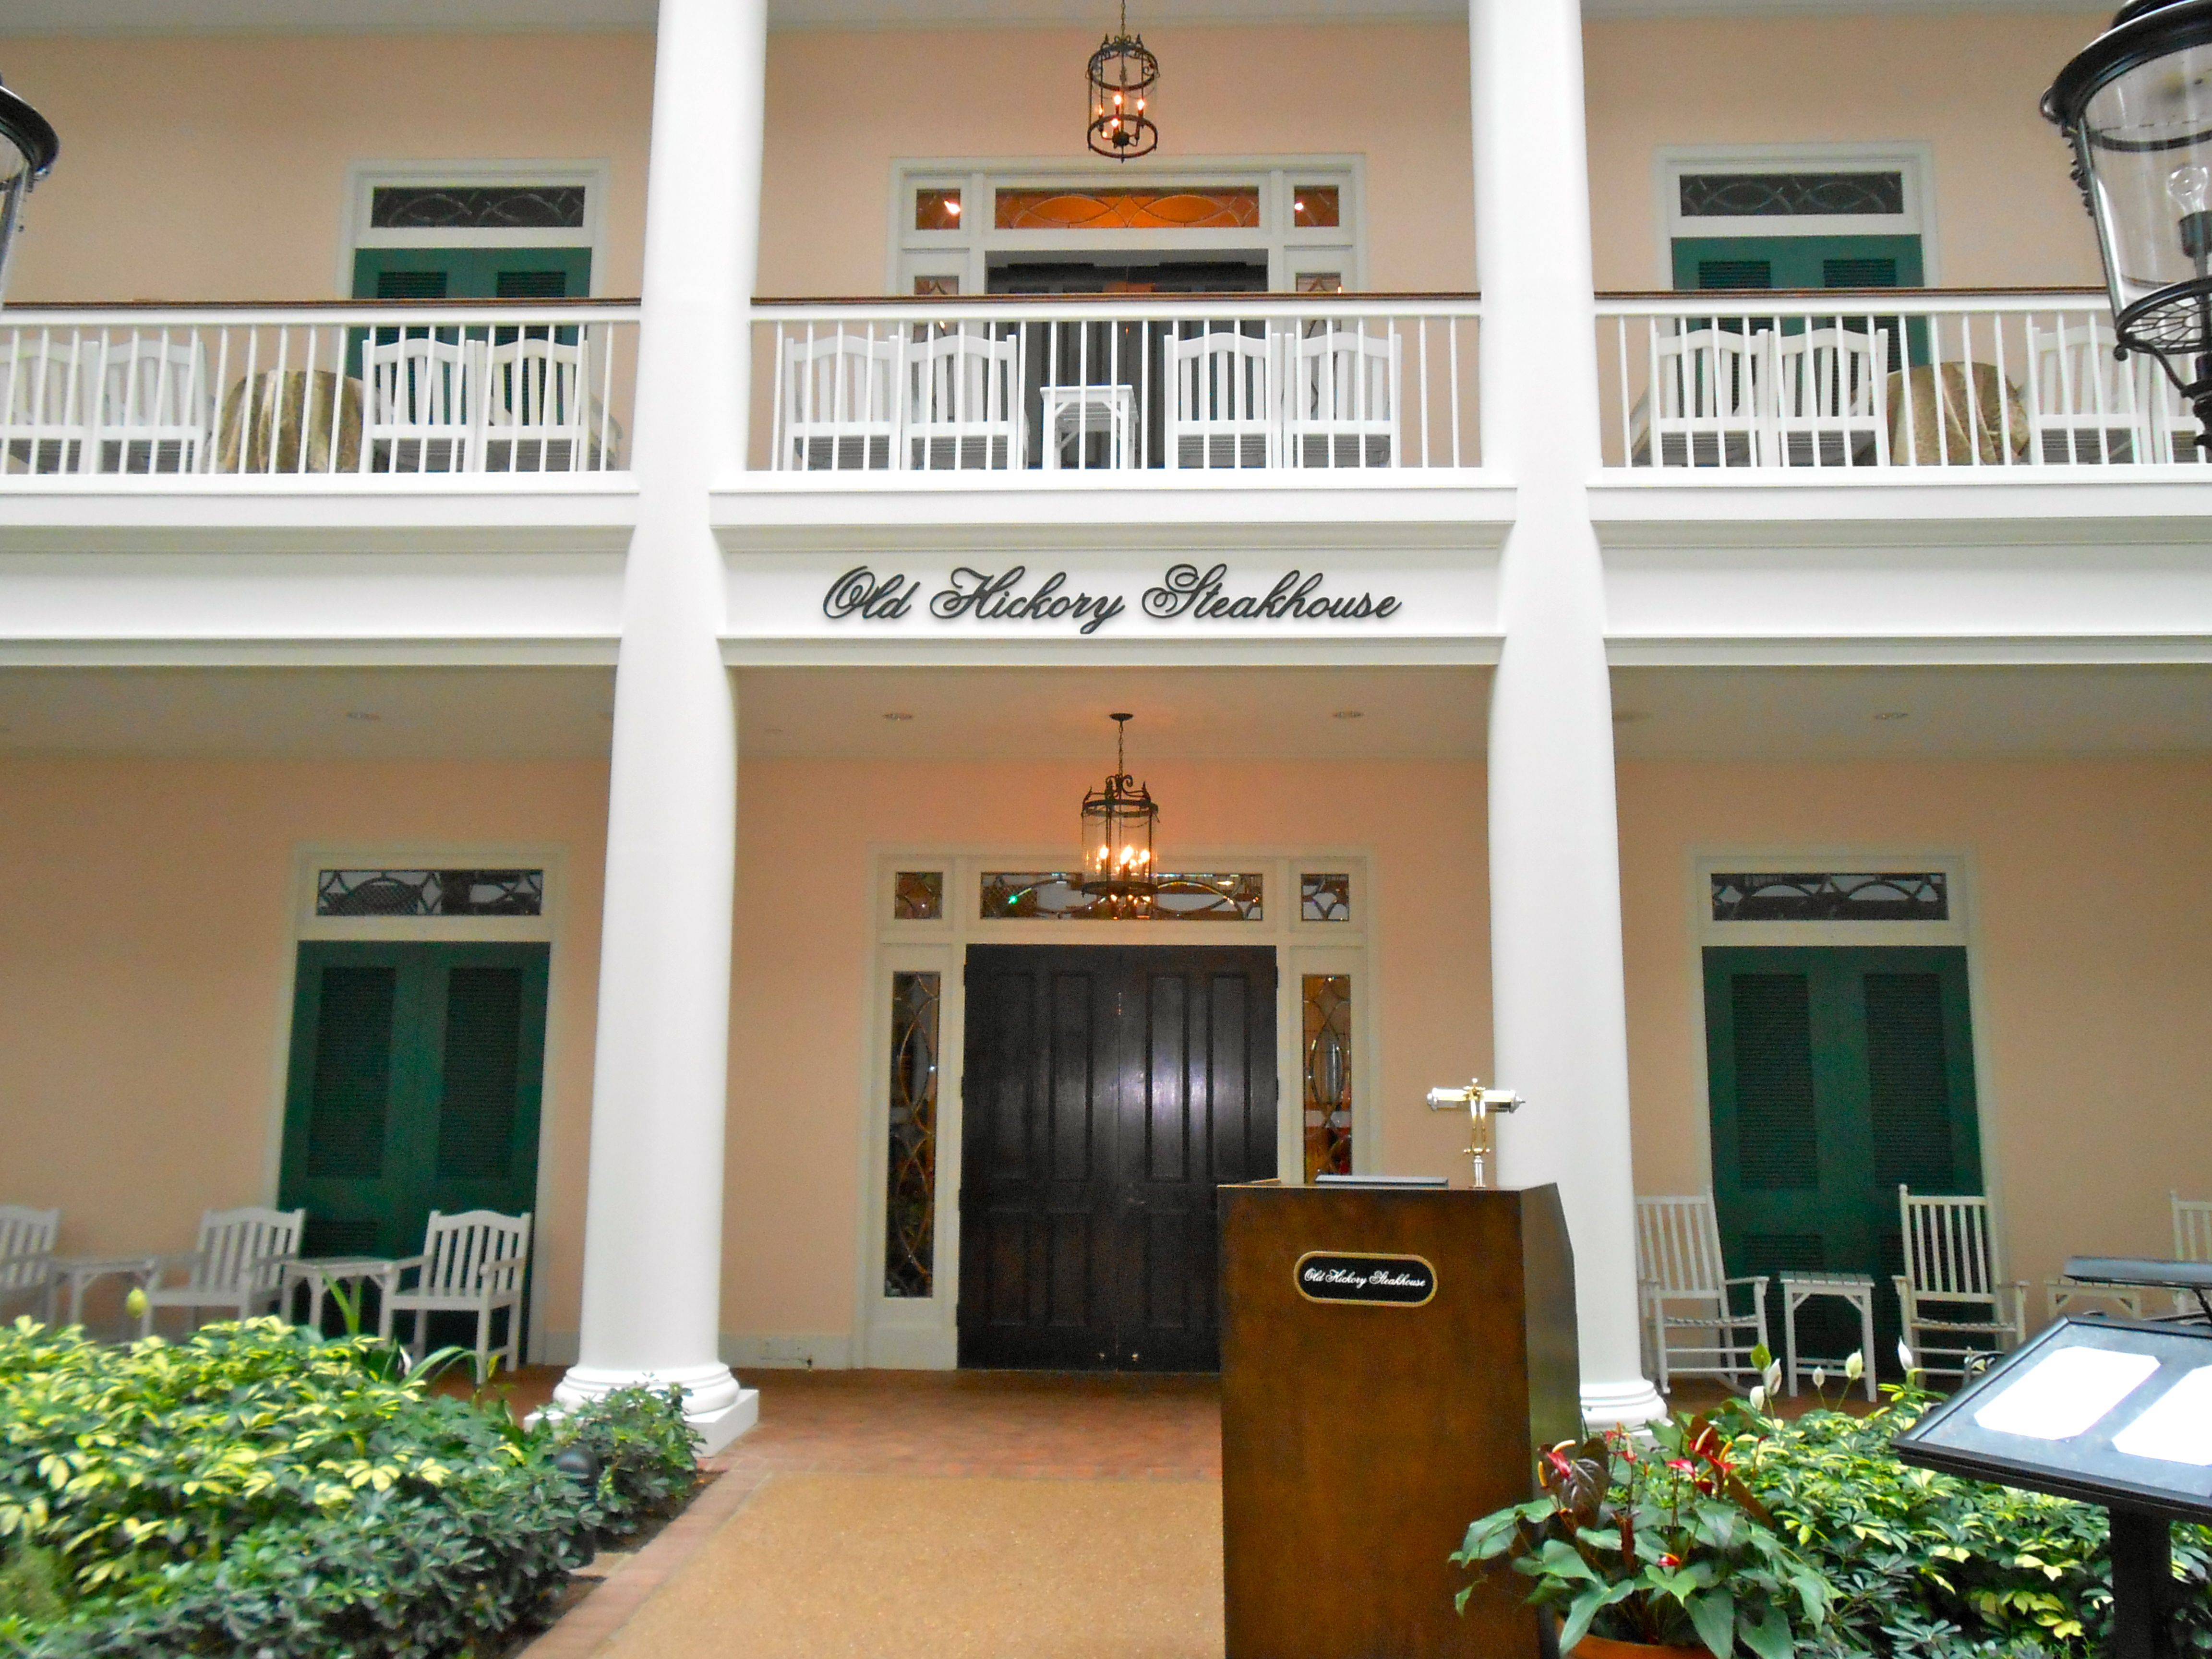 Old Hickory Steakhouse Gaylord Opryland Hotel